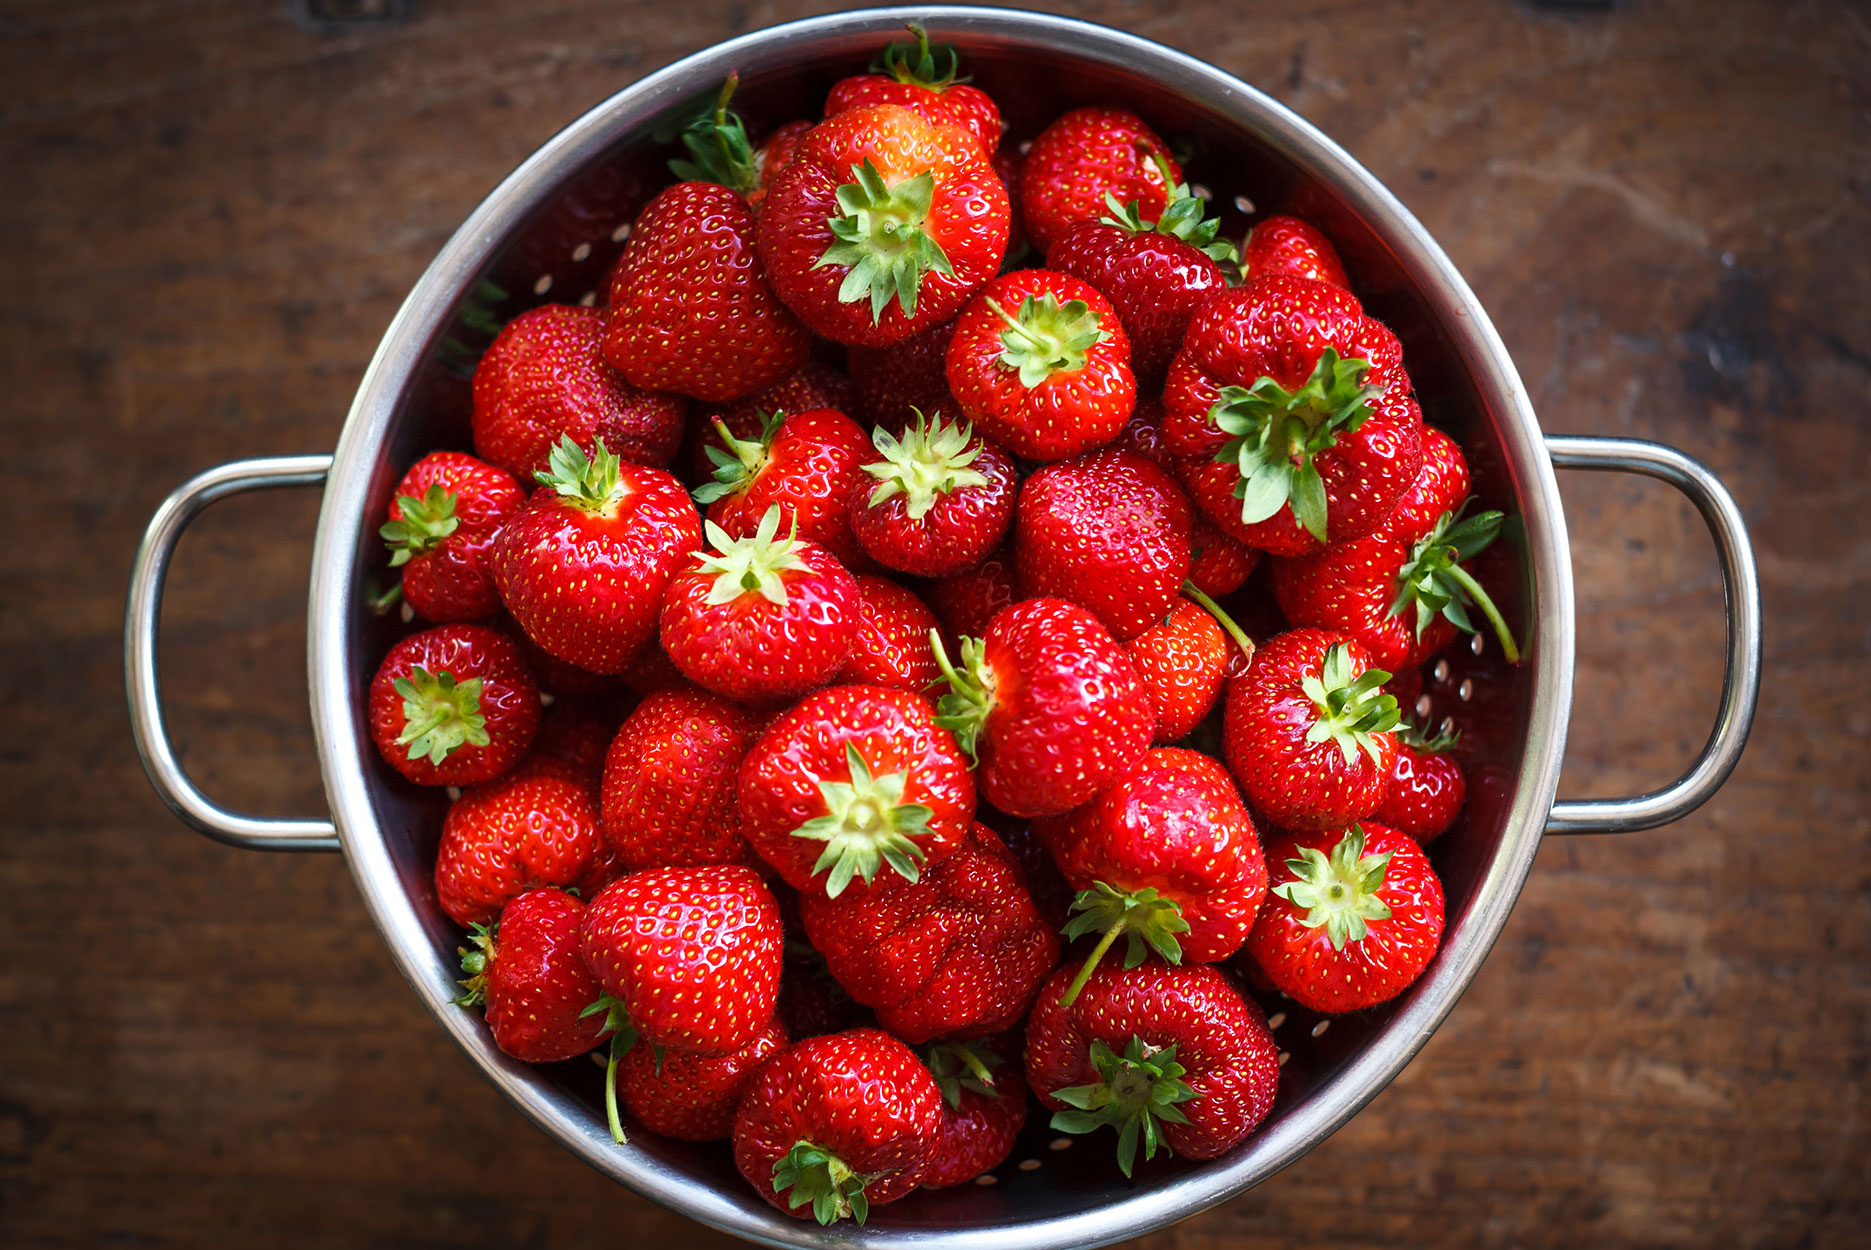 Colander full of ripe strawberries